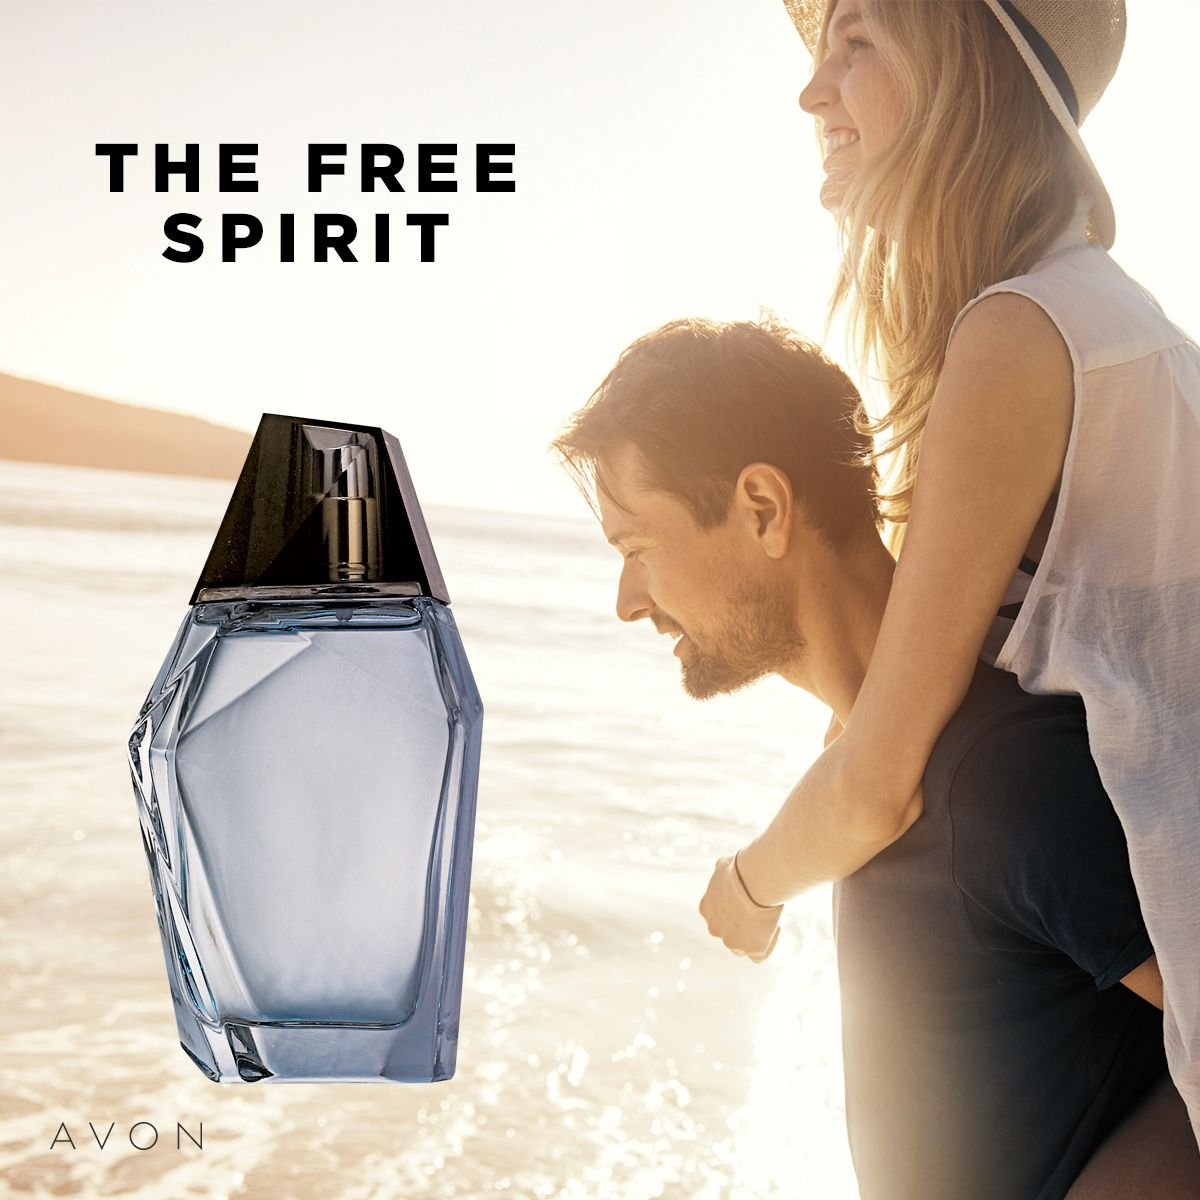 Perceive is a modern fresh cologne that no one can beat